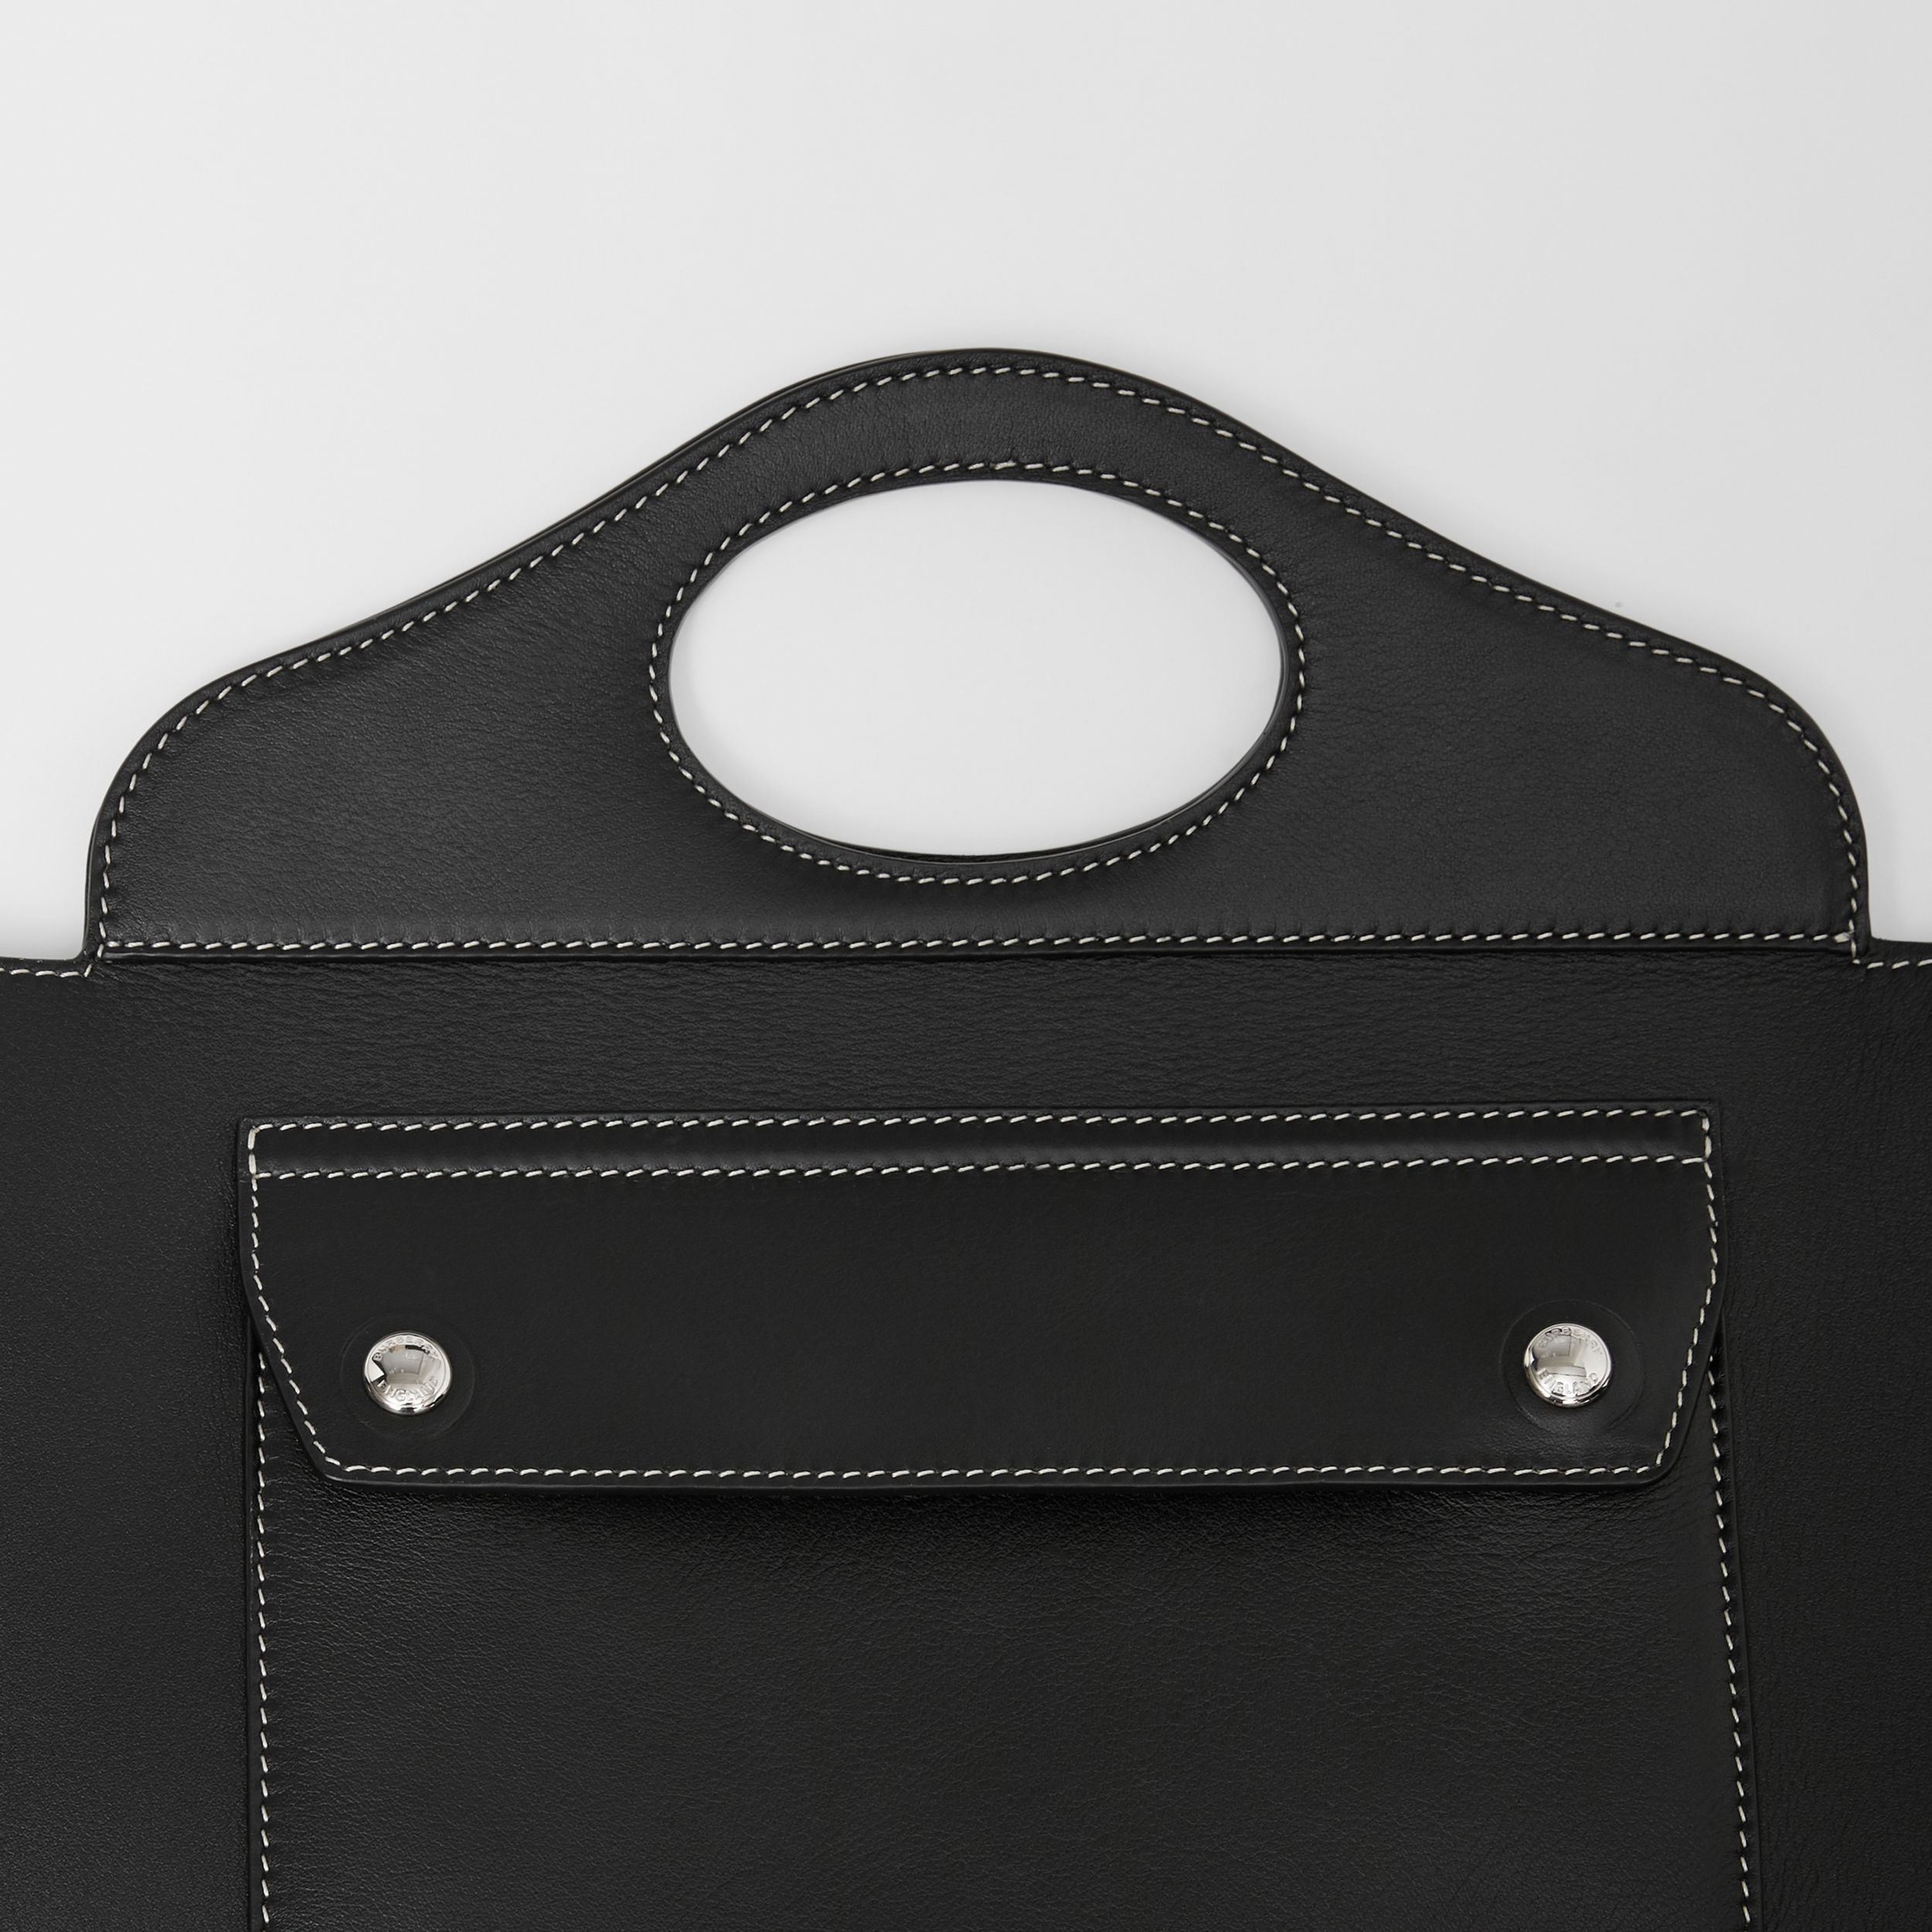 Mini Leather Soft Pocket Tote in Black - Women | Burberry - 2